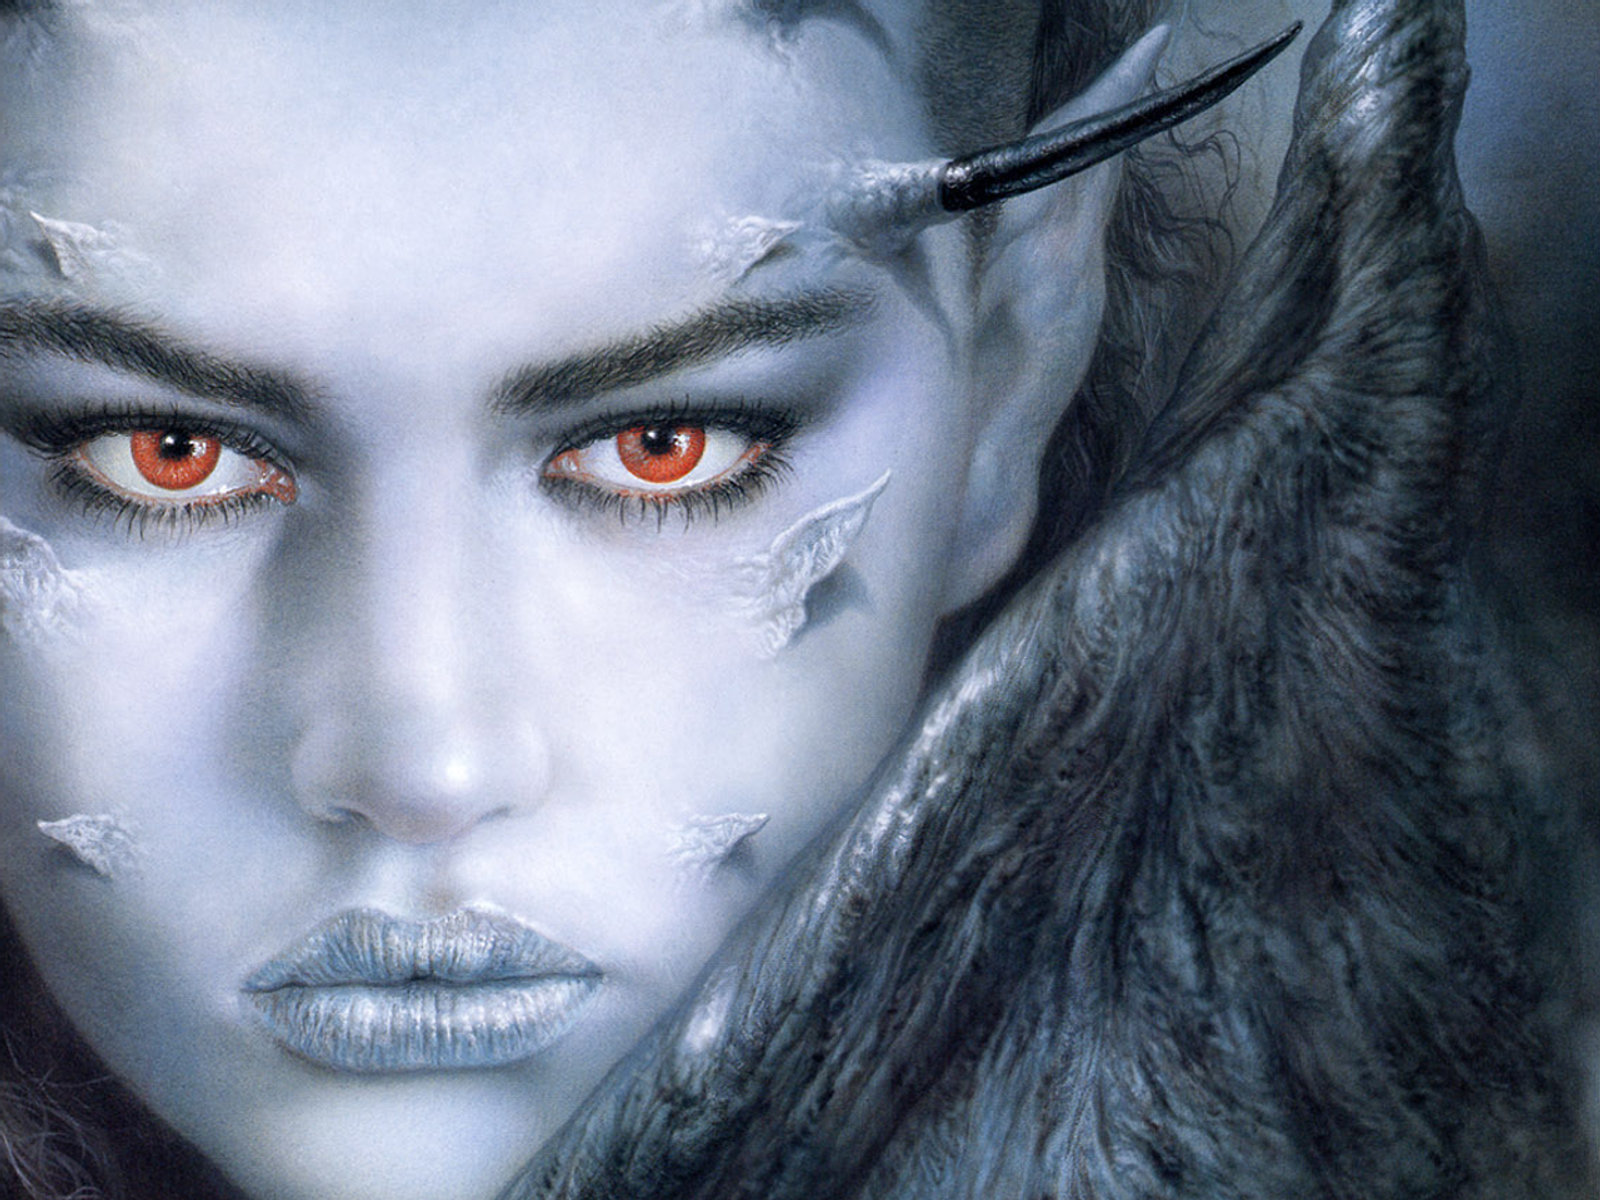 Luis royo images demon lady hd wallpaper and background photos luis royo images demon lady hd wallpaper and background photos voltagebd Image collections